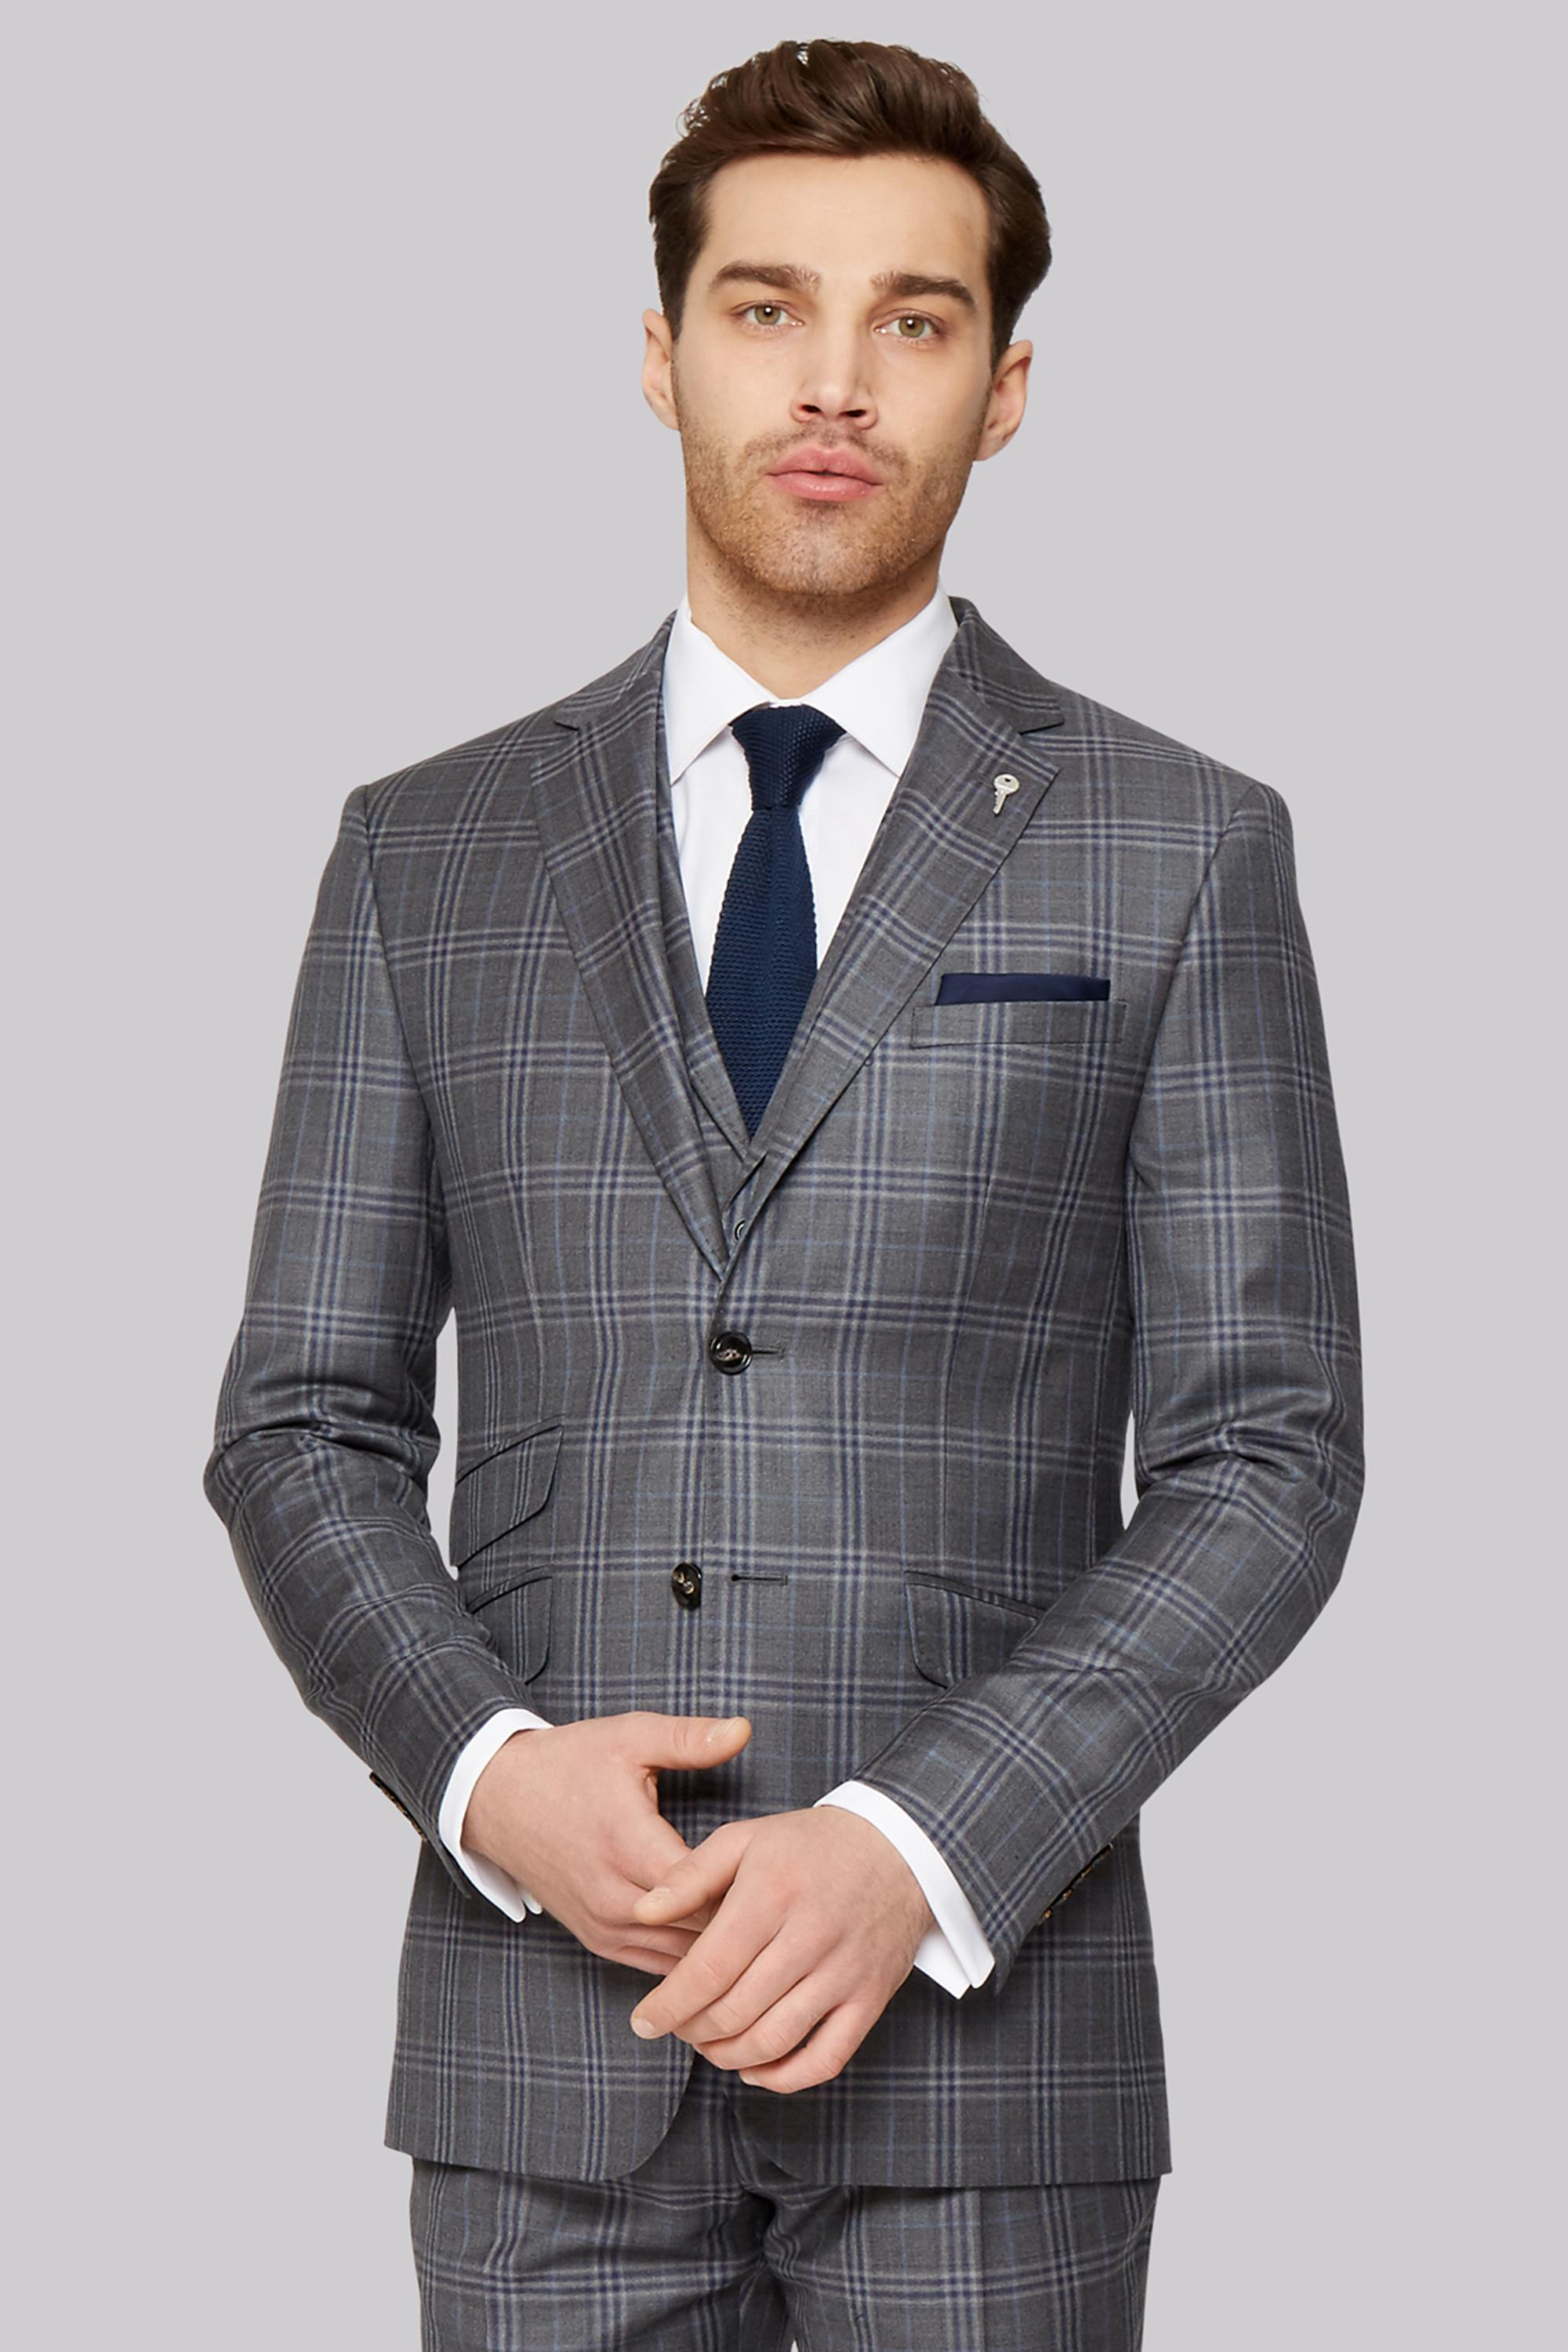 745fdcf828f3a Ted Baker Tailored Fit Grey Check Jacket in Gray for Men - Lyst